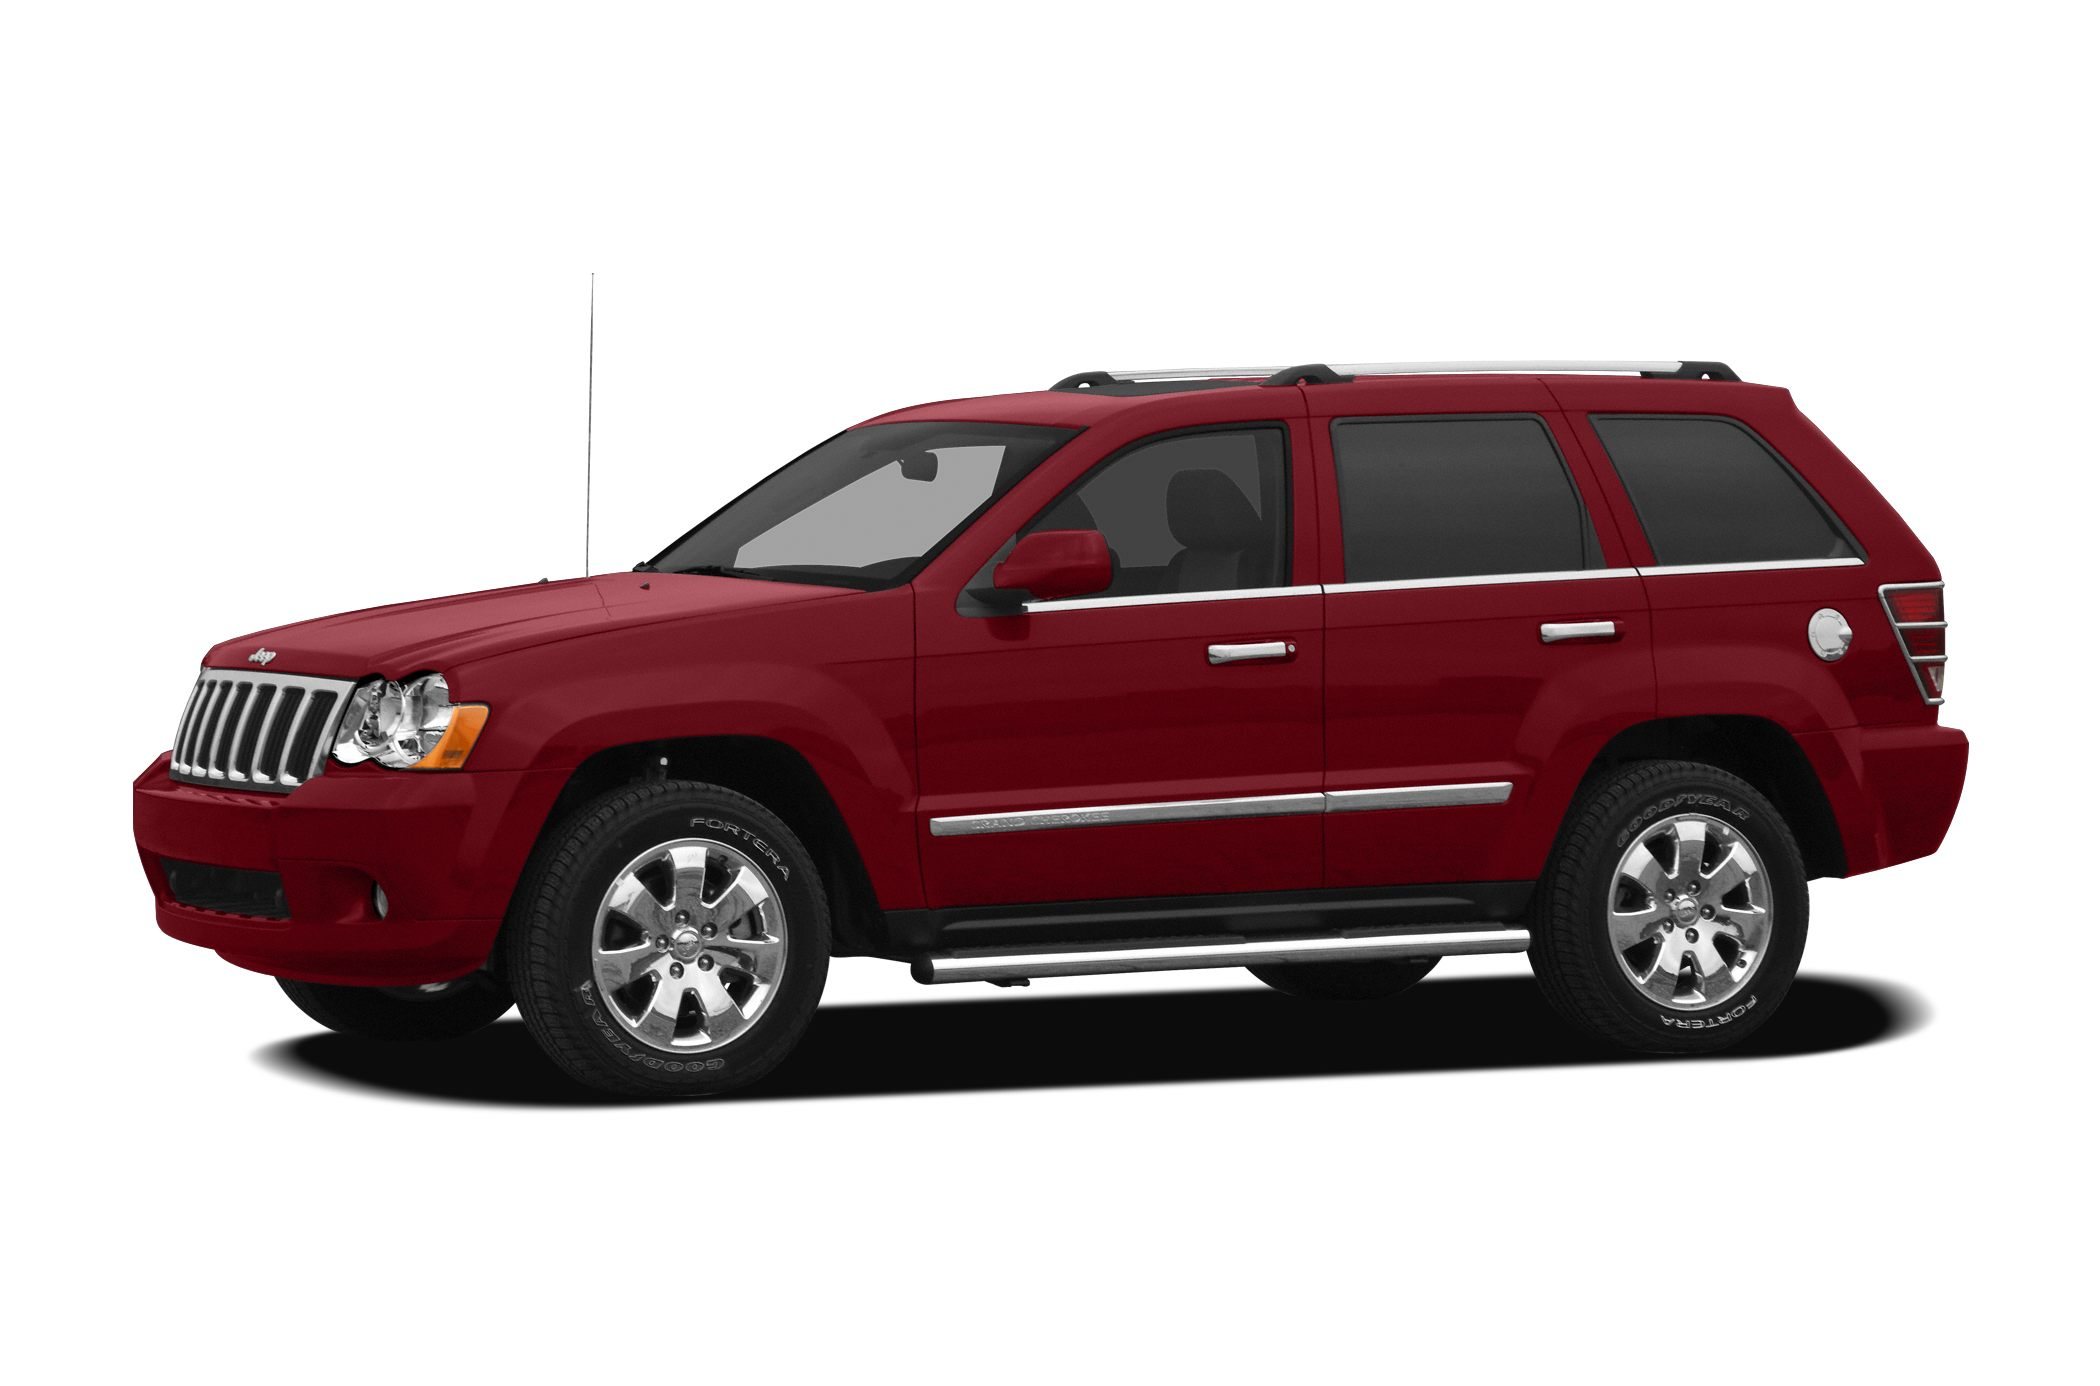 2010 Jeep Grand Cherokee Laredo COMPLIMENTARY ROYAL SHIELD VEHICLE LIMITED WARRANTY FOR 3 MONTH